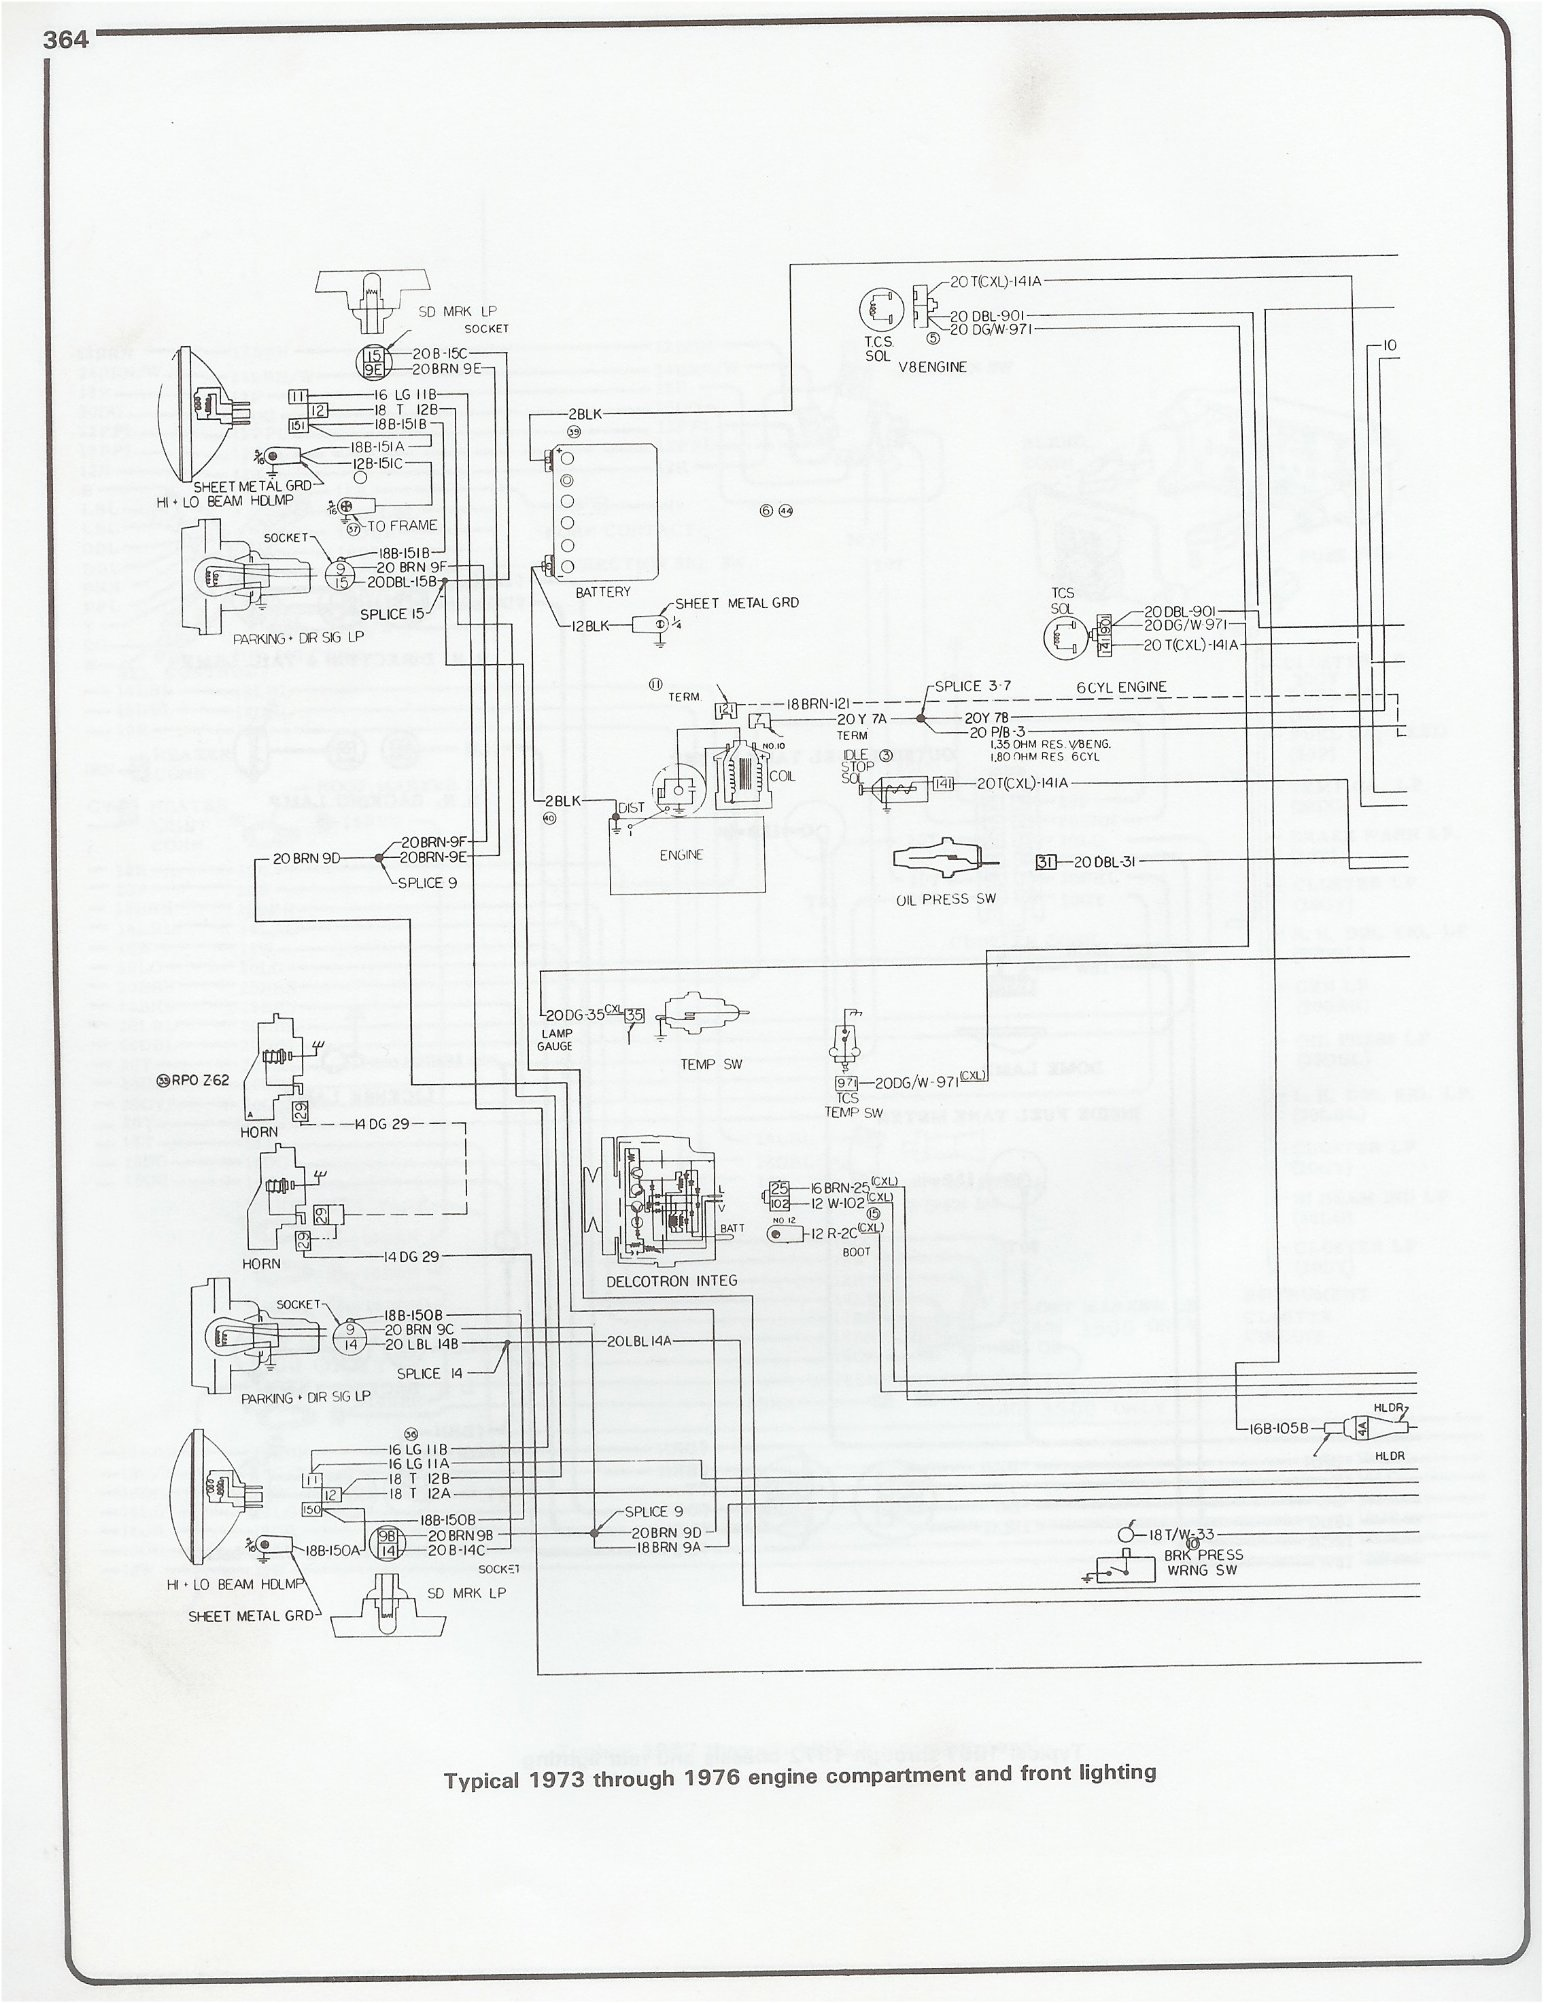 76 c10 wiring diagram data wiring schema 76 chevy fuse box diagram complete  73 87 wiring